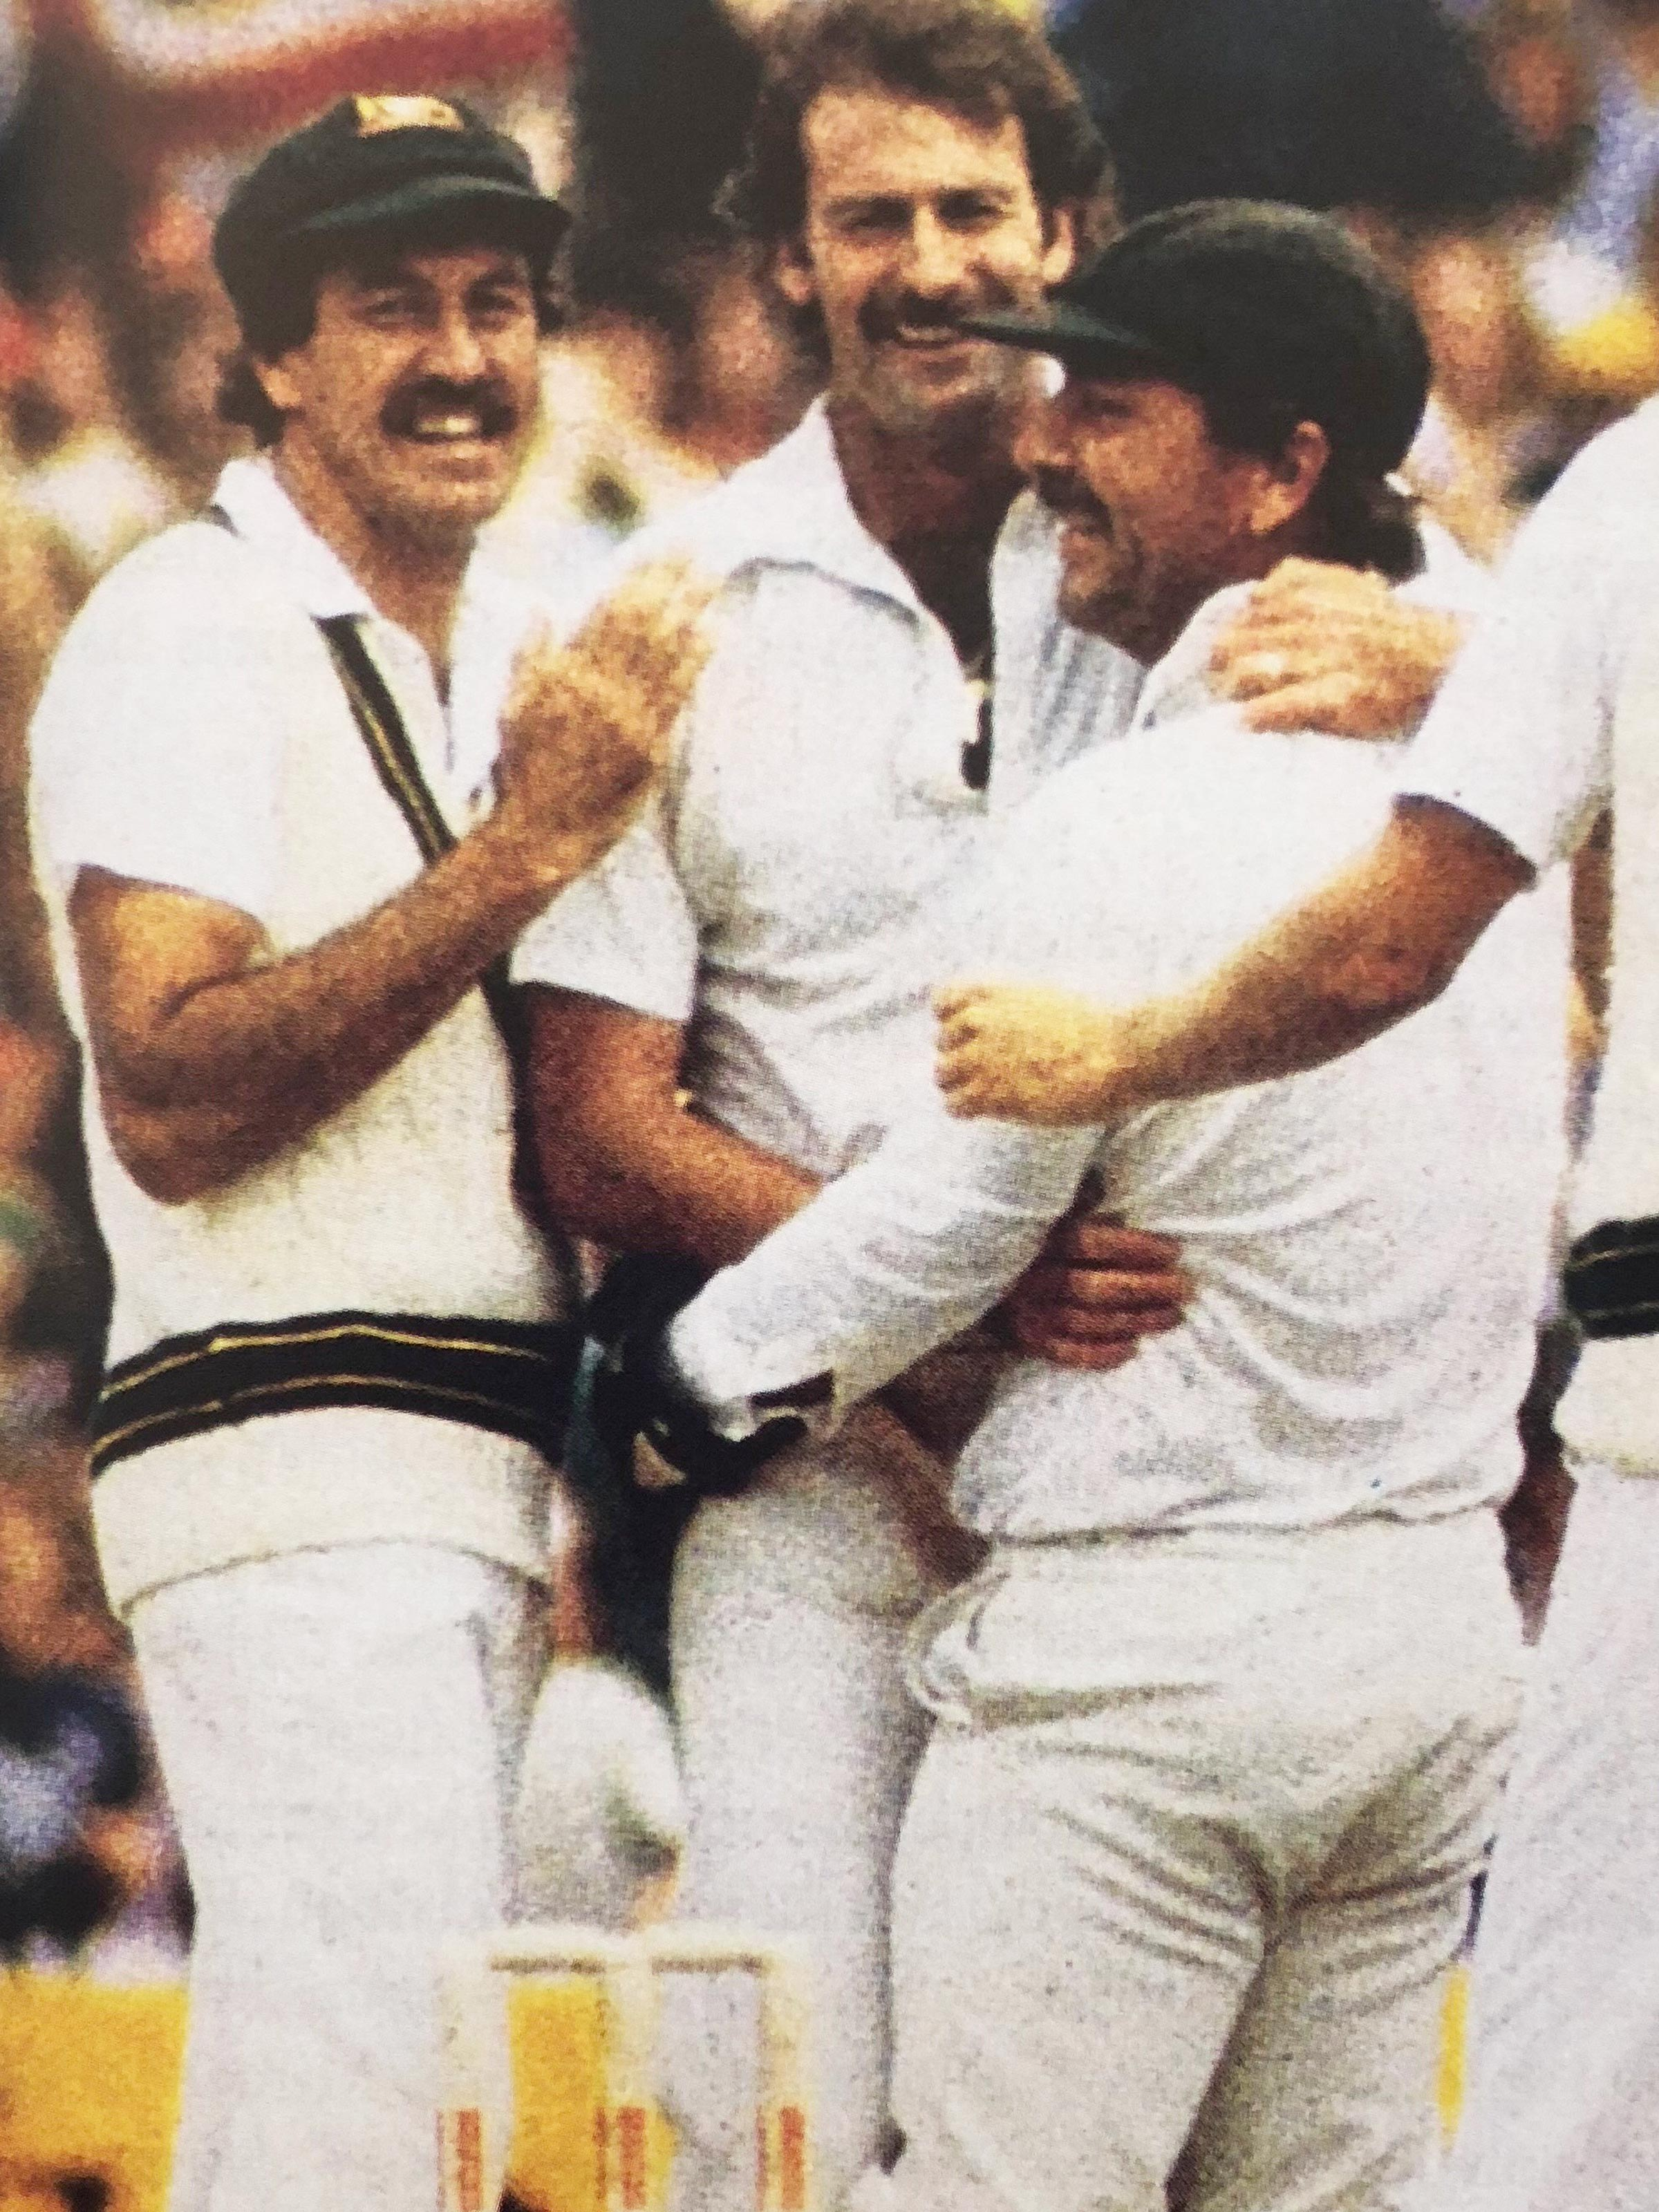 Yardley with Dennis Lillee and Rod Marsh // Courtesy Yardley Family